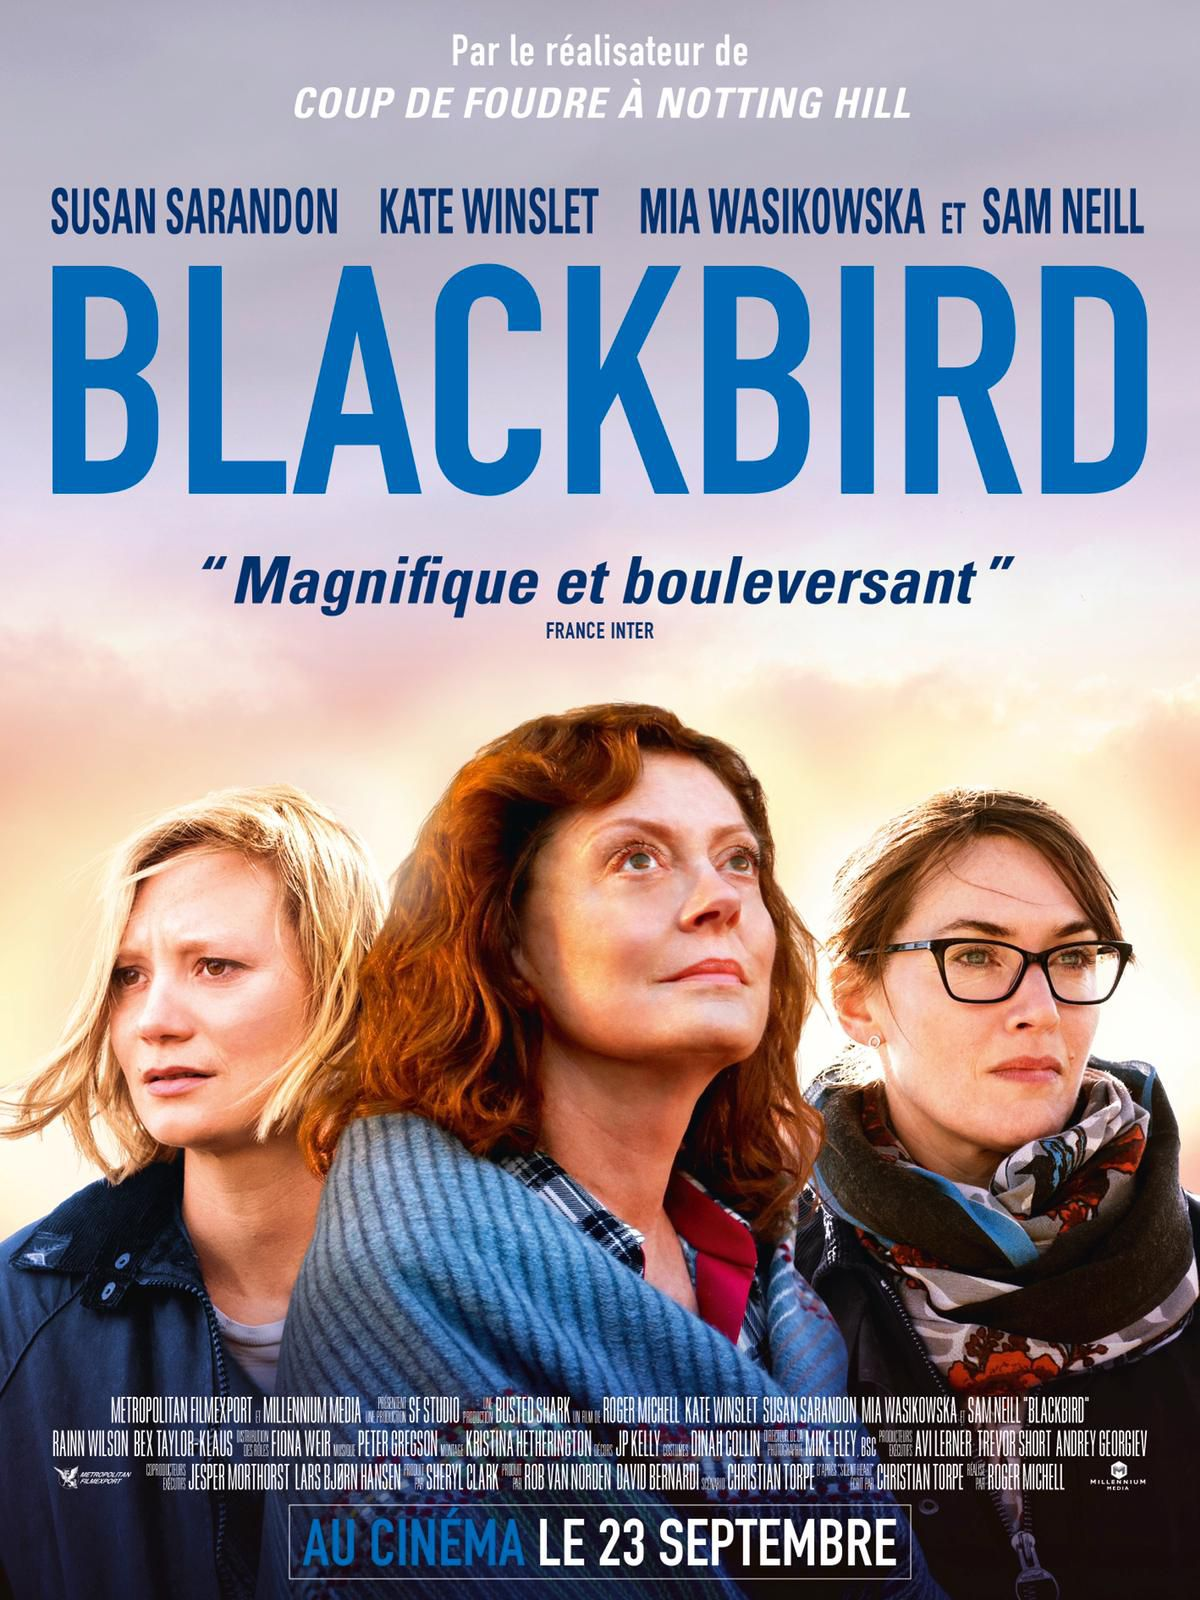 Blackbird - Film (2020) streaming VF gratuit complet